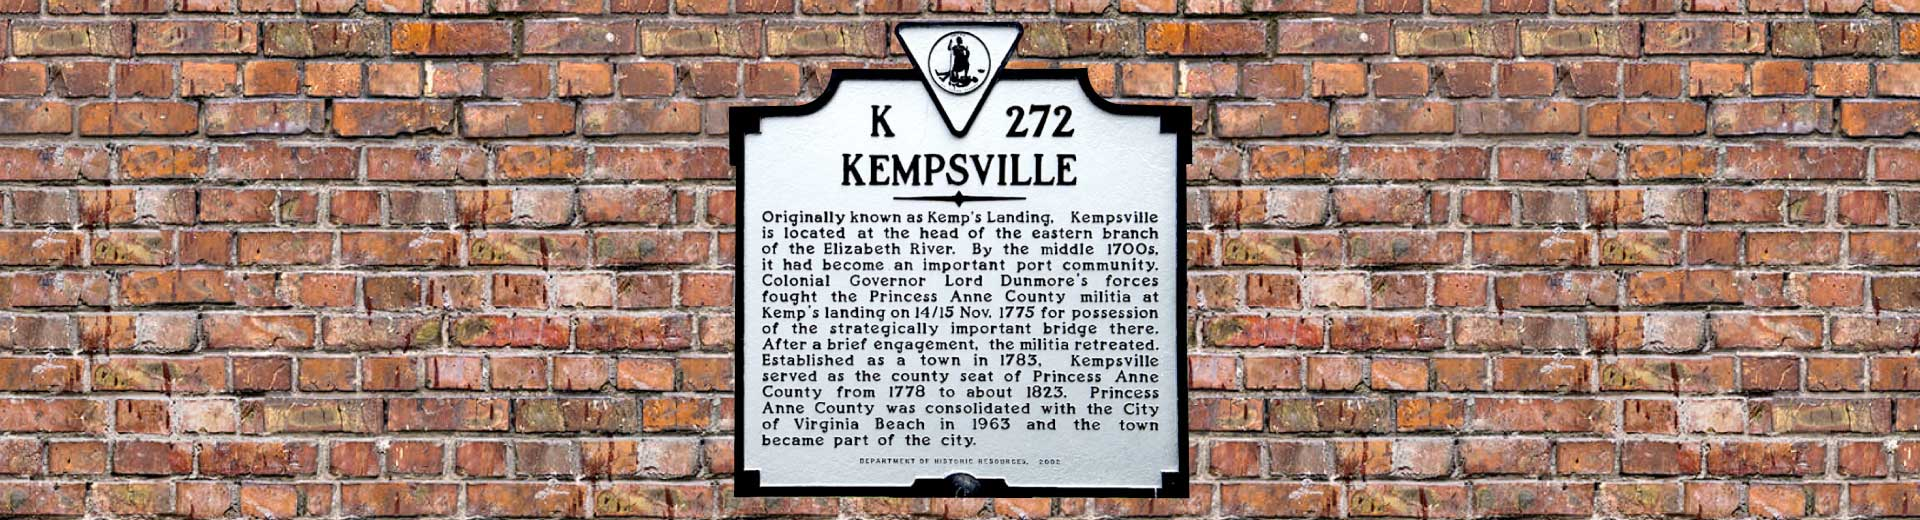 kempsville virginia beach locally owned